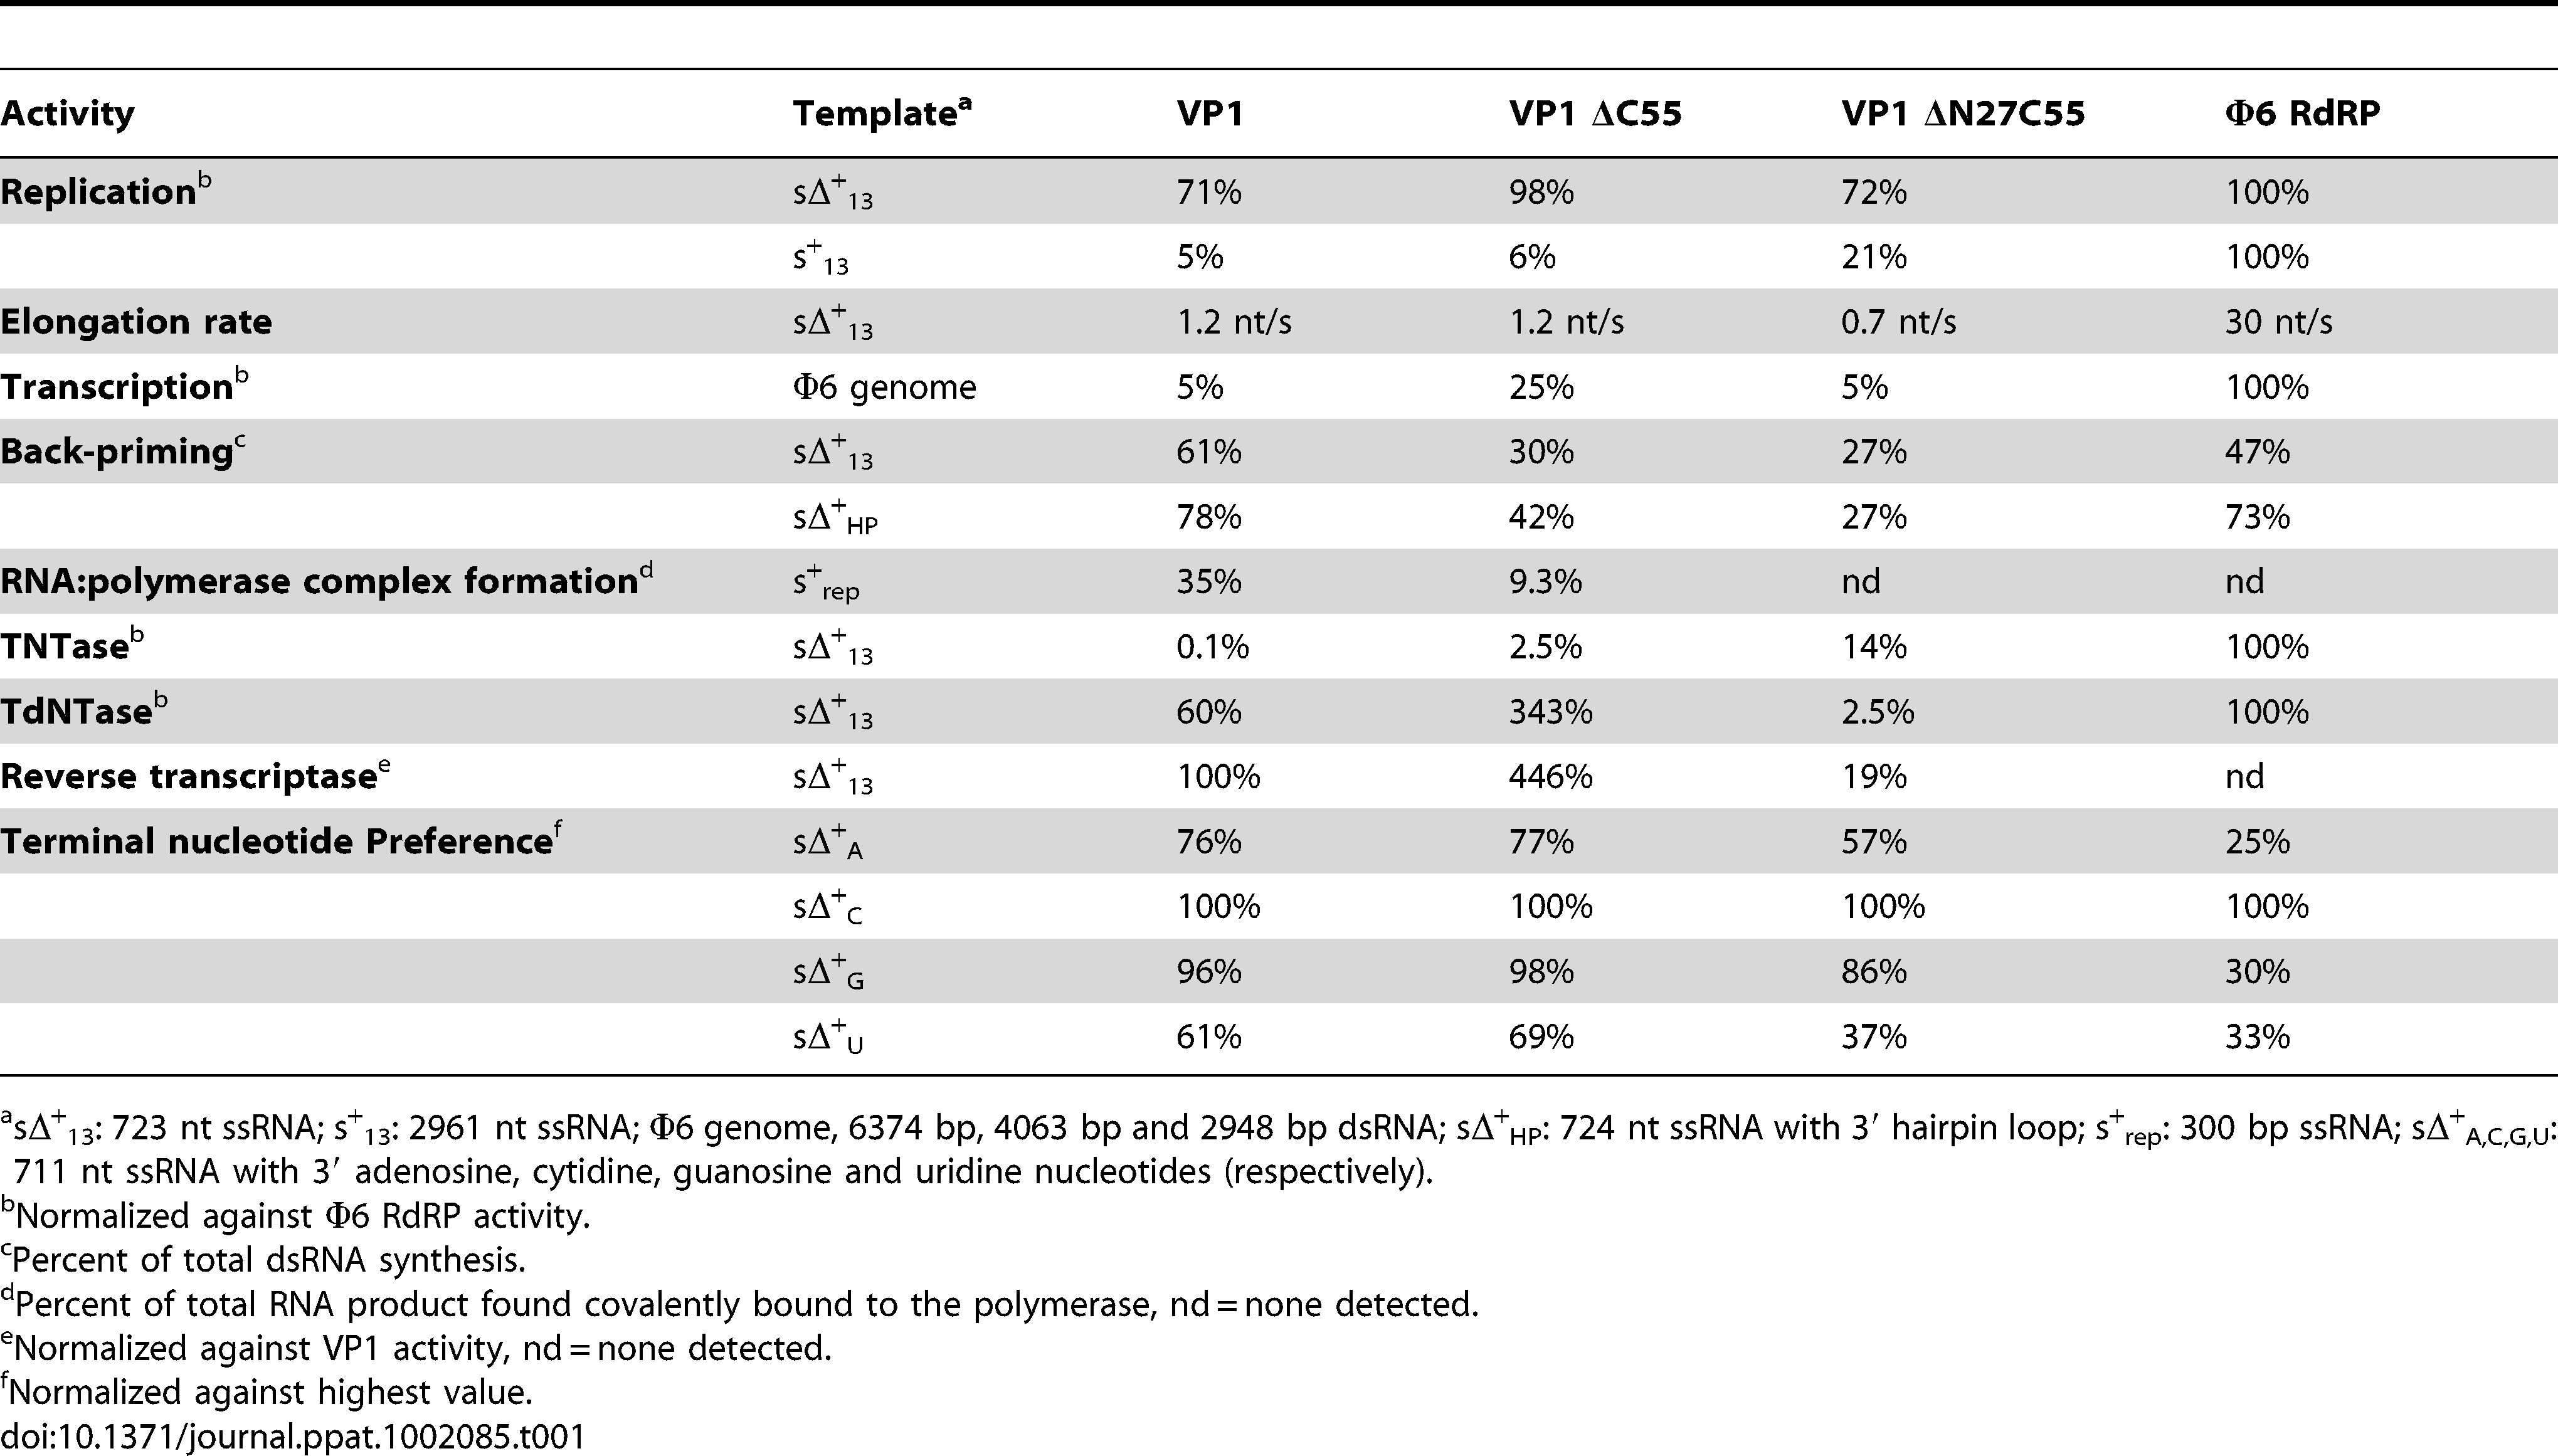 Biochemical characterization of the IPNV VP1 polymerases.